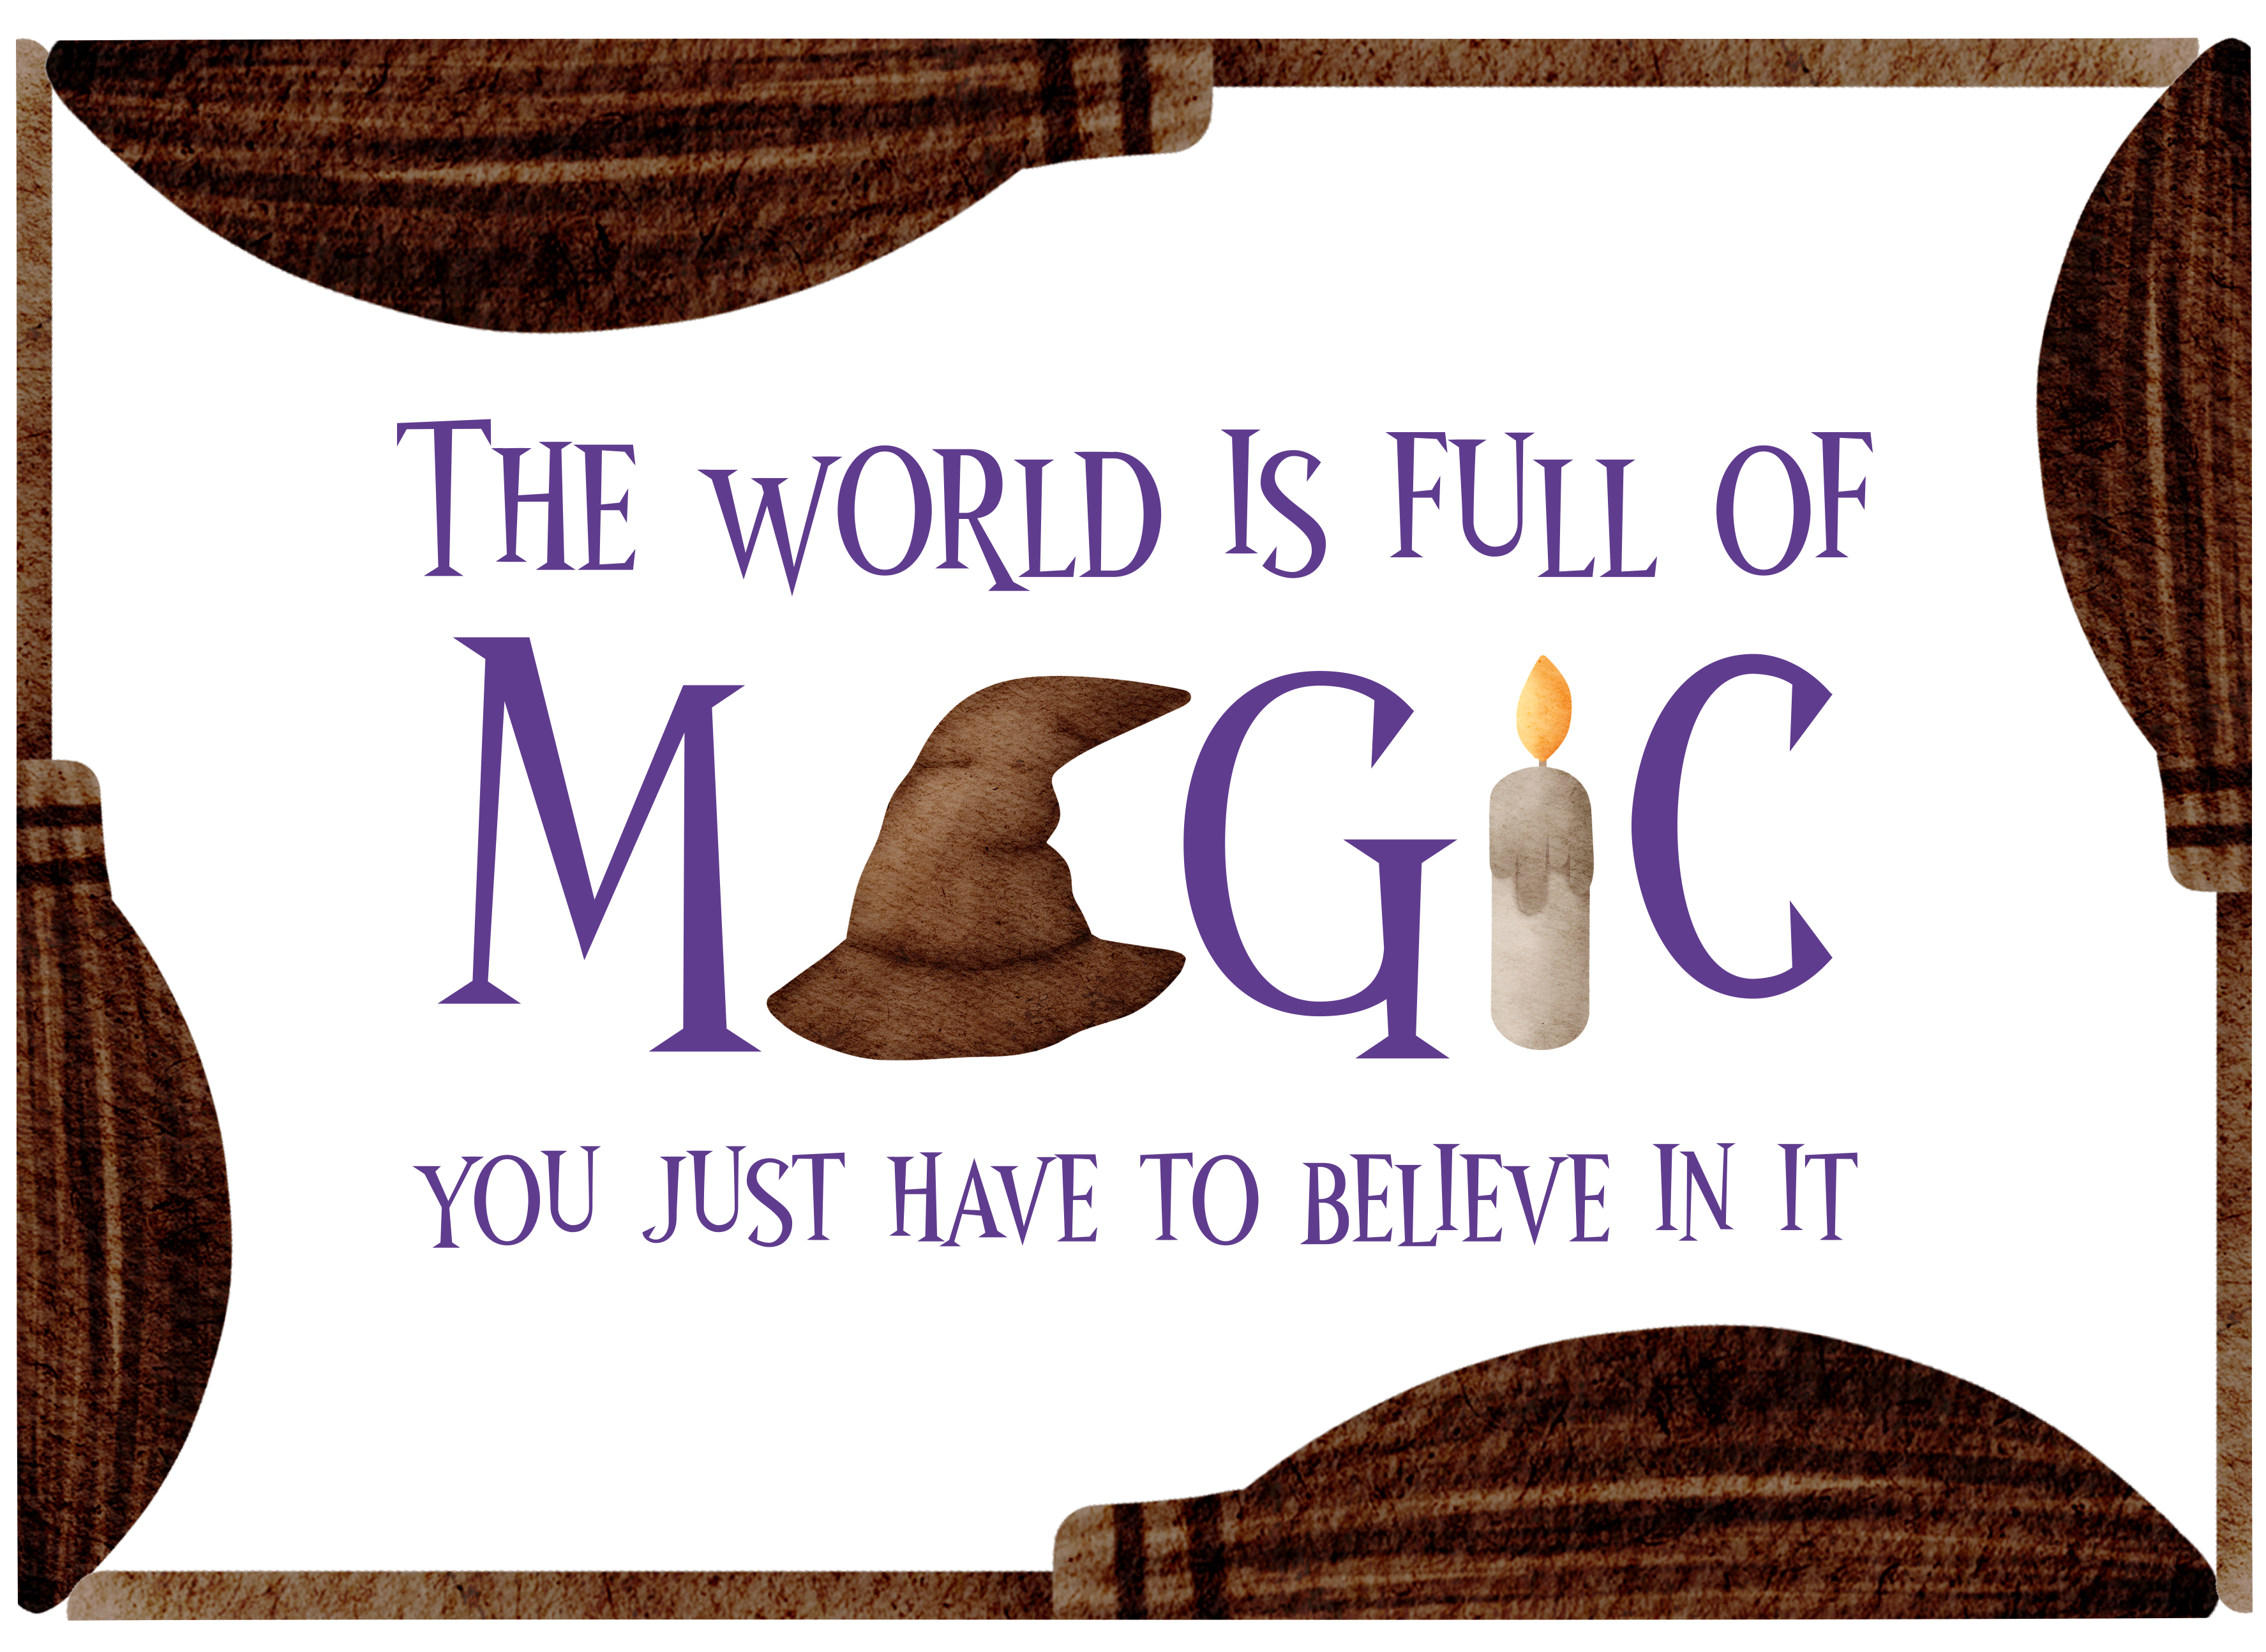 design with brooms, wizard hat and candle, with quote about magic